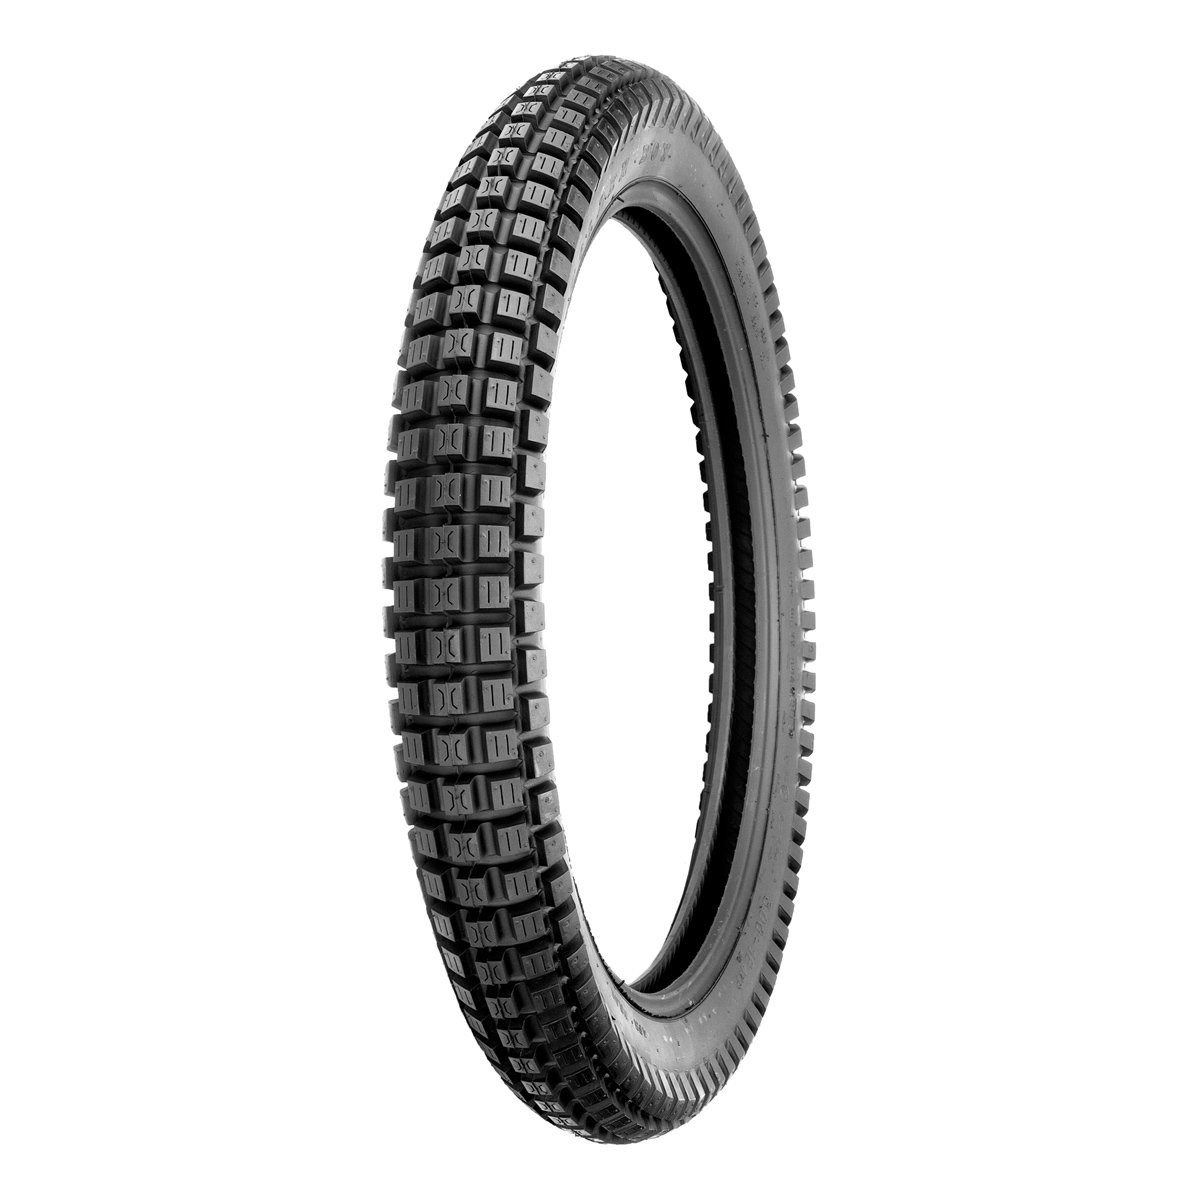 Shinko SR241 Front/Rear Dual Sport Motorcycle Tires - 2.50-15 87-4452 4333047072